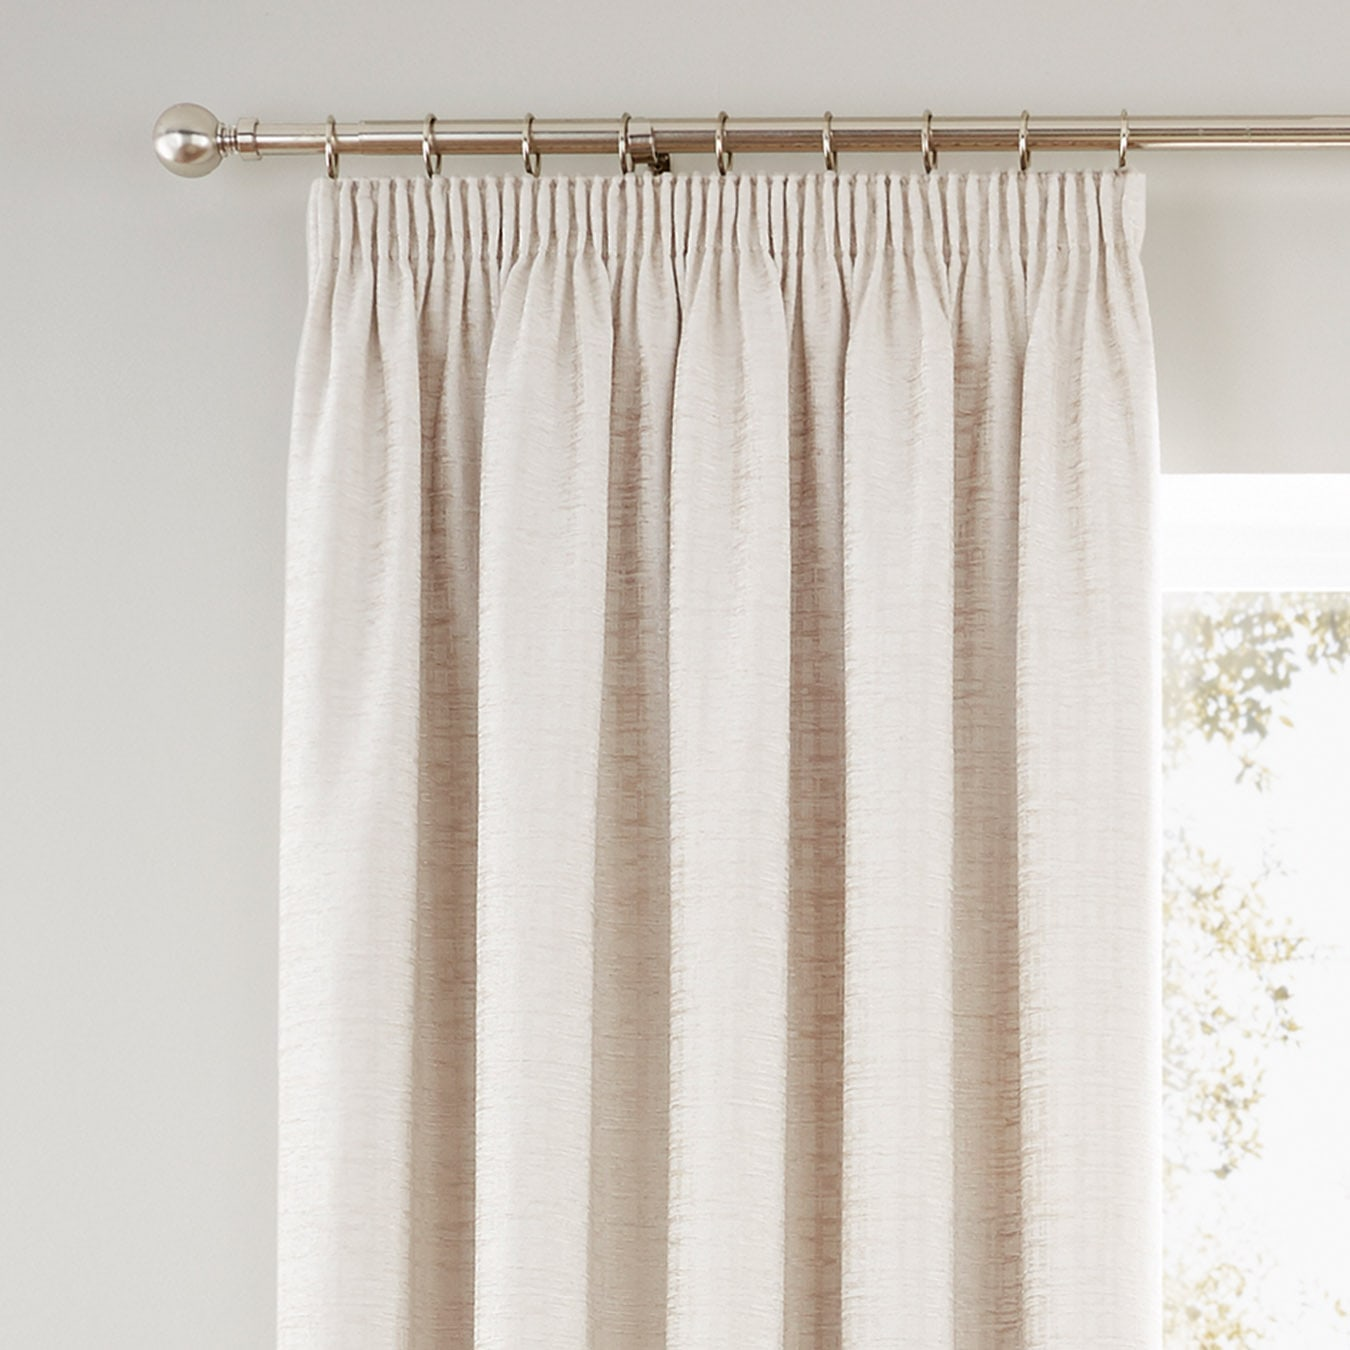 Top 10 curtain stores in kl selangor for Curtain making service